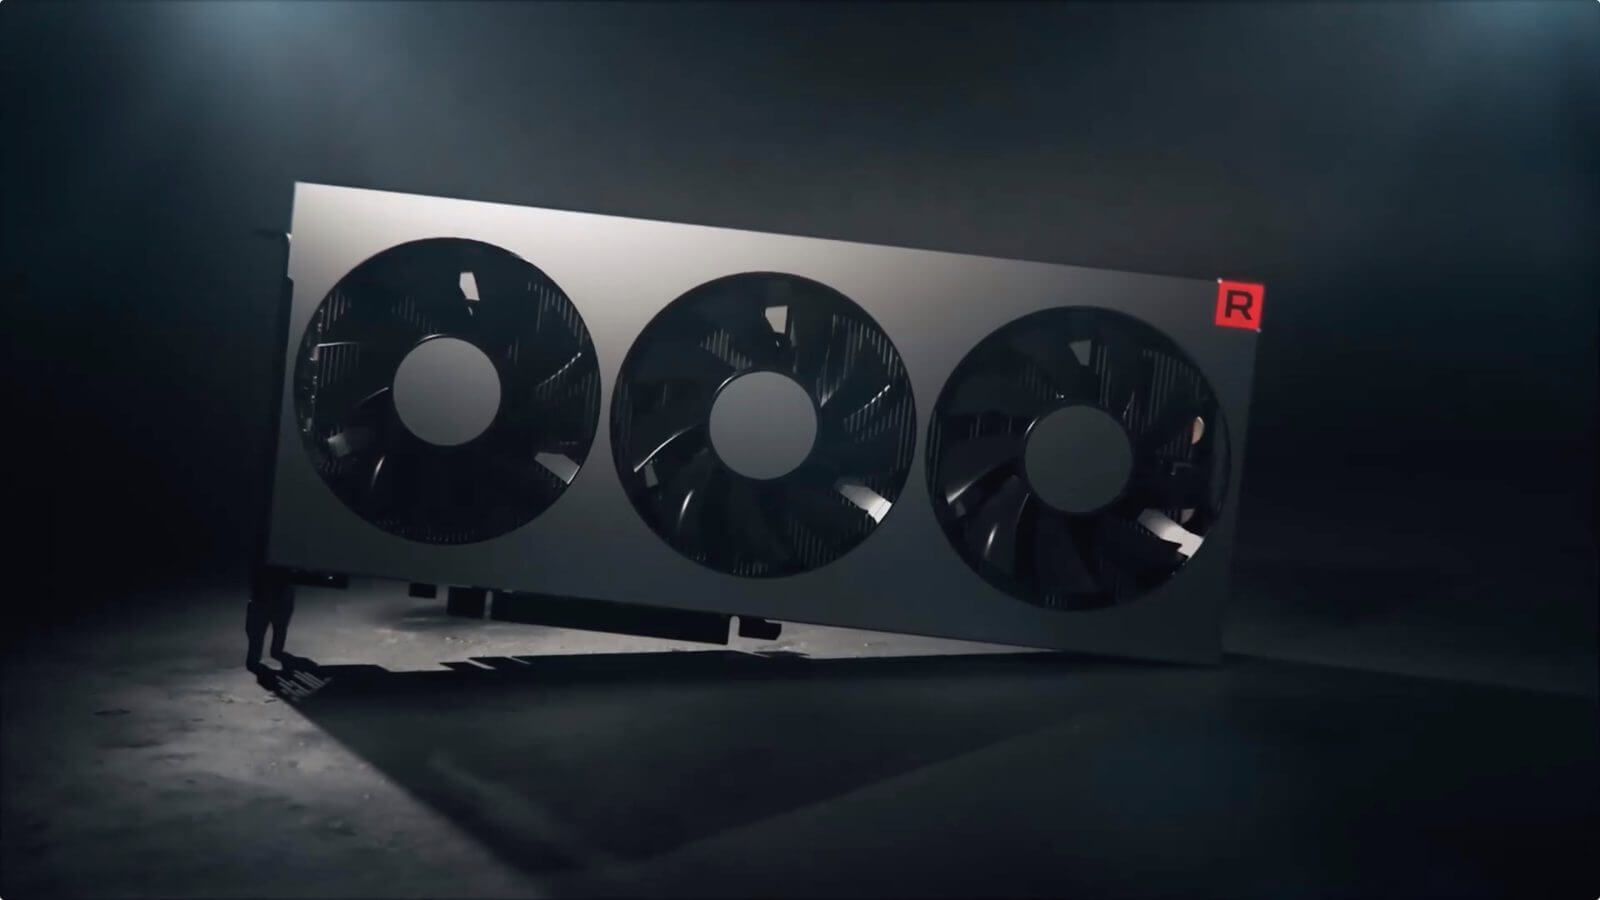 The RTX 2080 will crush the AMD Radeon VII - CEO